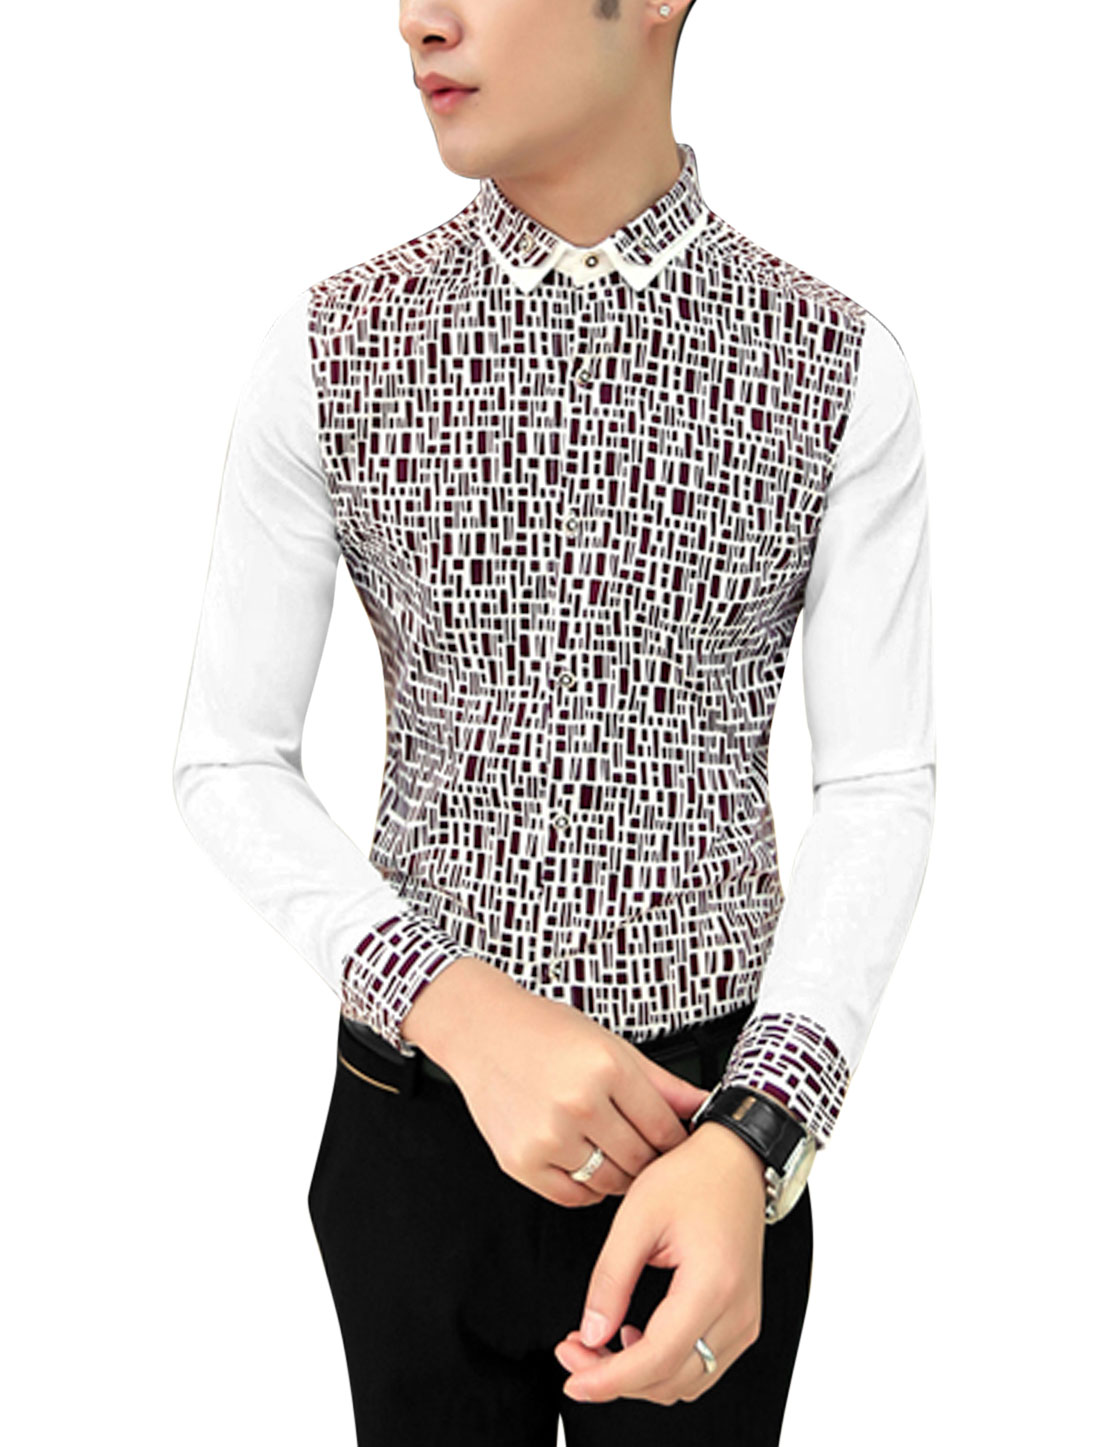 Men Buttoned Cuffs Contrast Geometric Print Slim Cut Shirt Brown White M